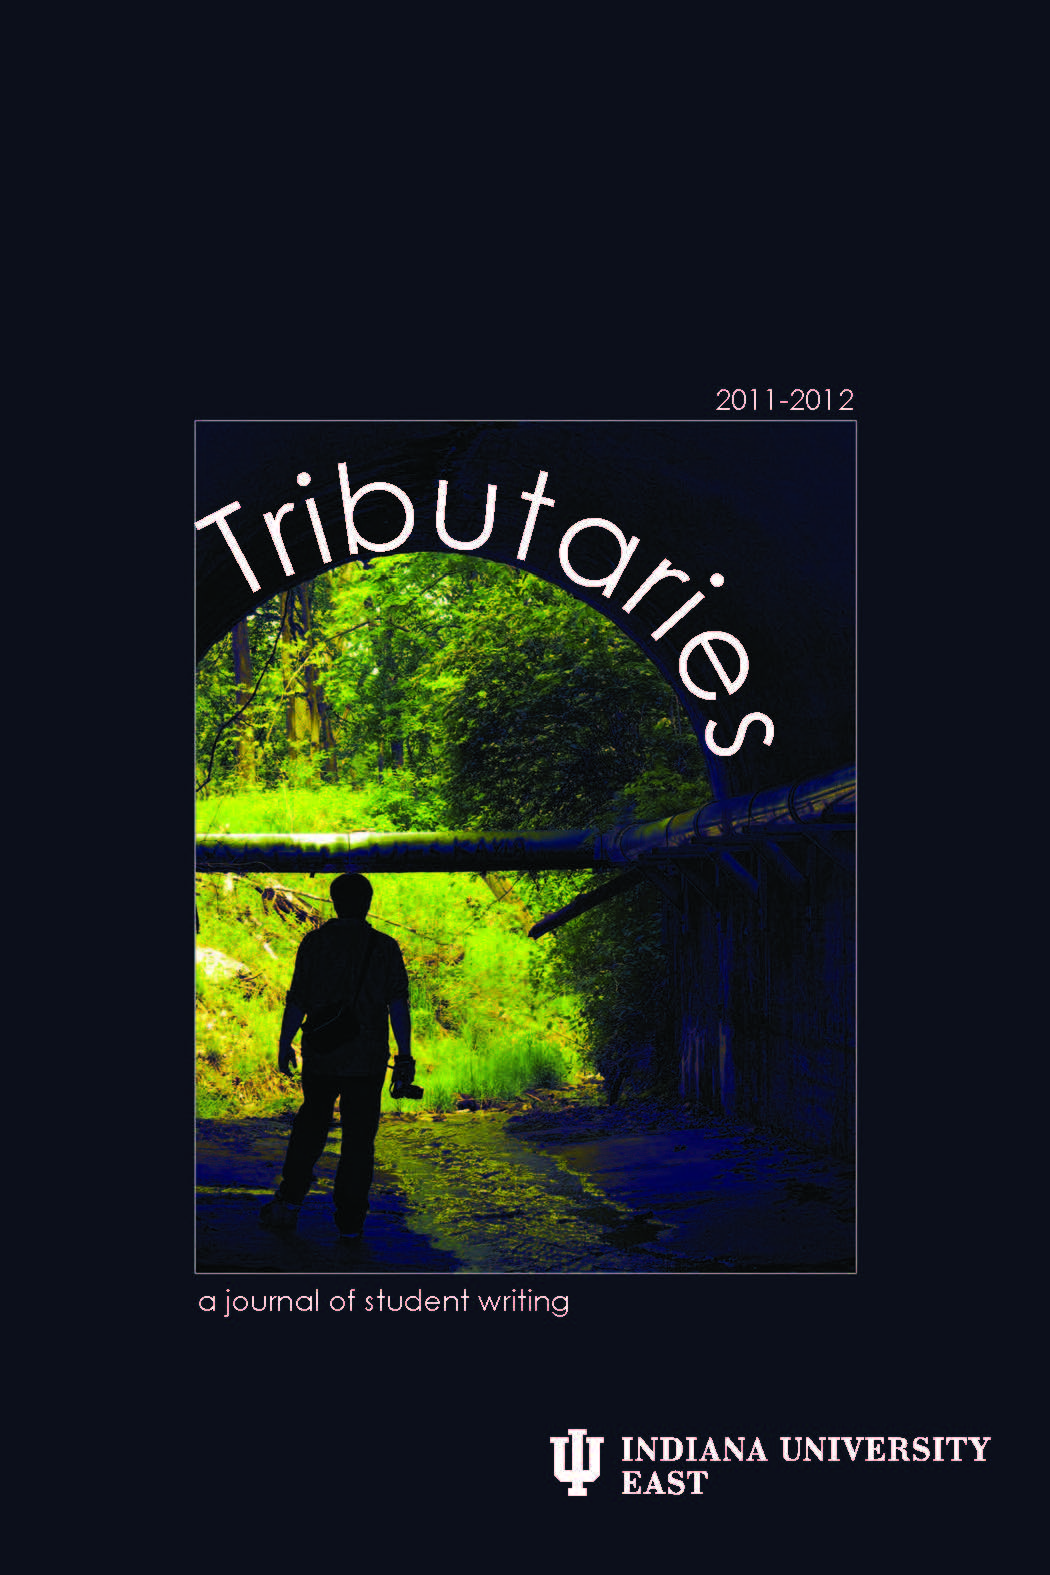 Cover Image 2011-Black Background, greelight silhouetting a human figure in an outside entry.